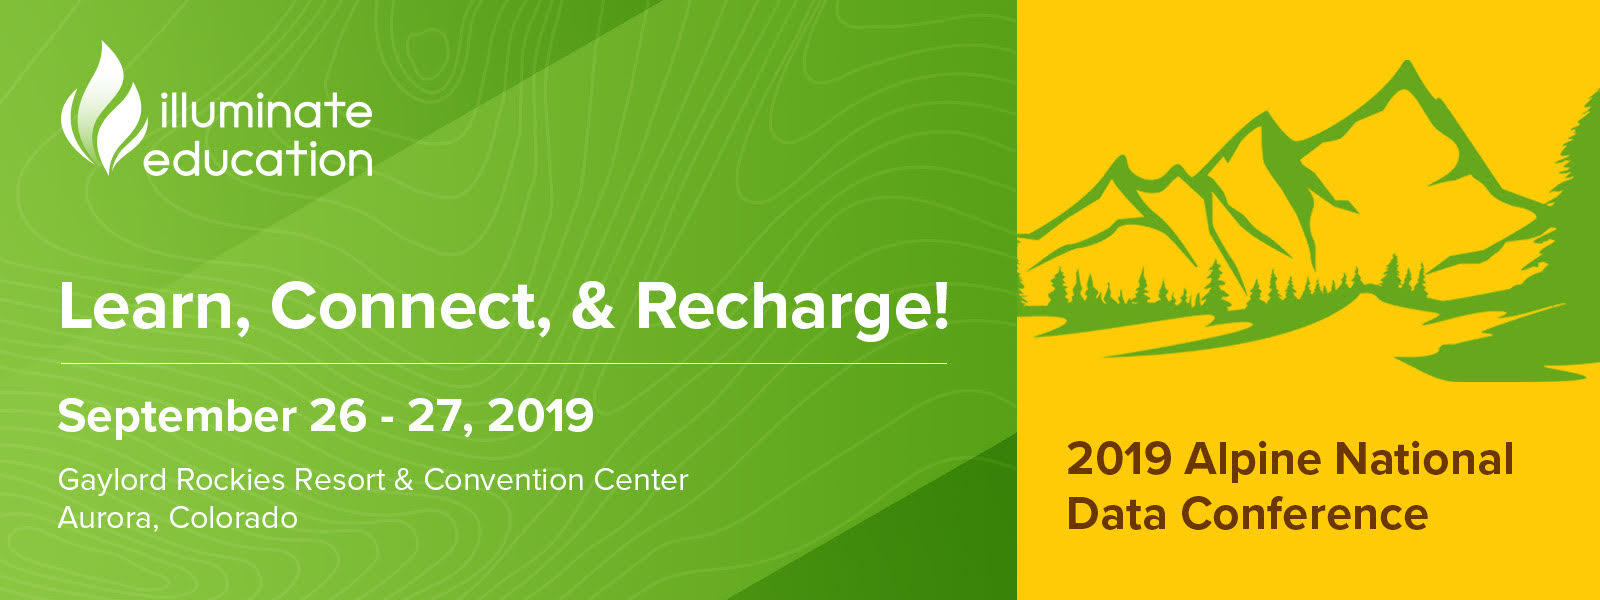 2019 Alpine National Data Conference landing page header banner